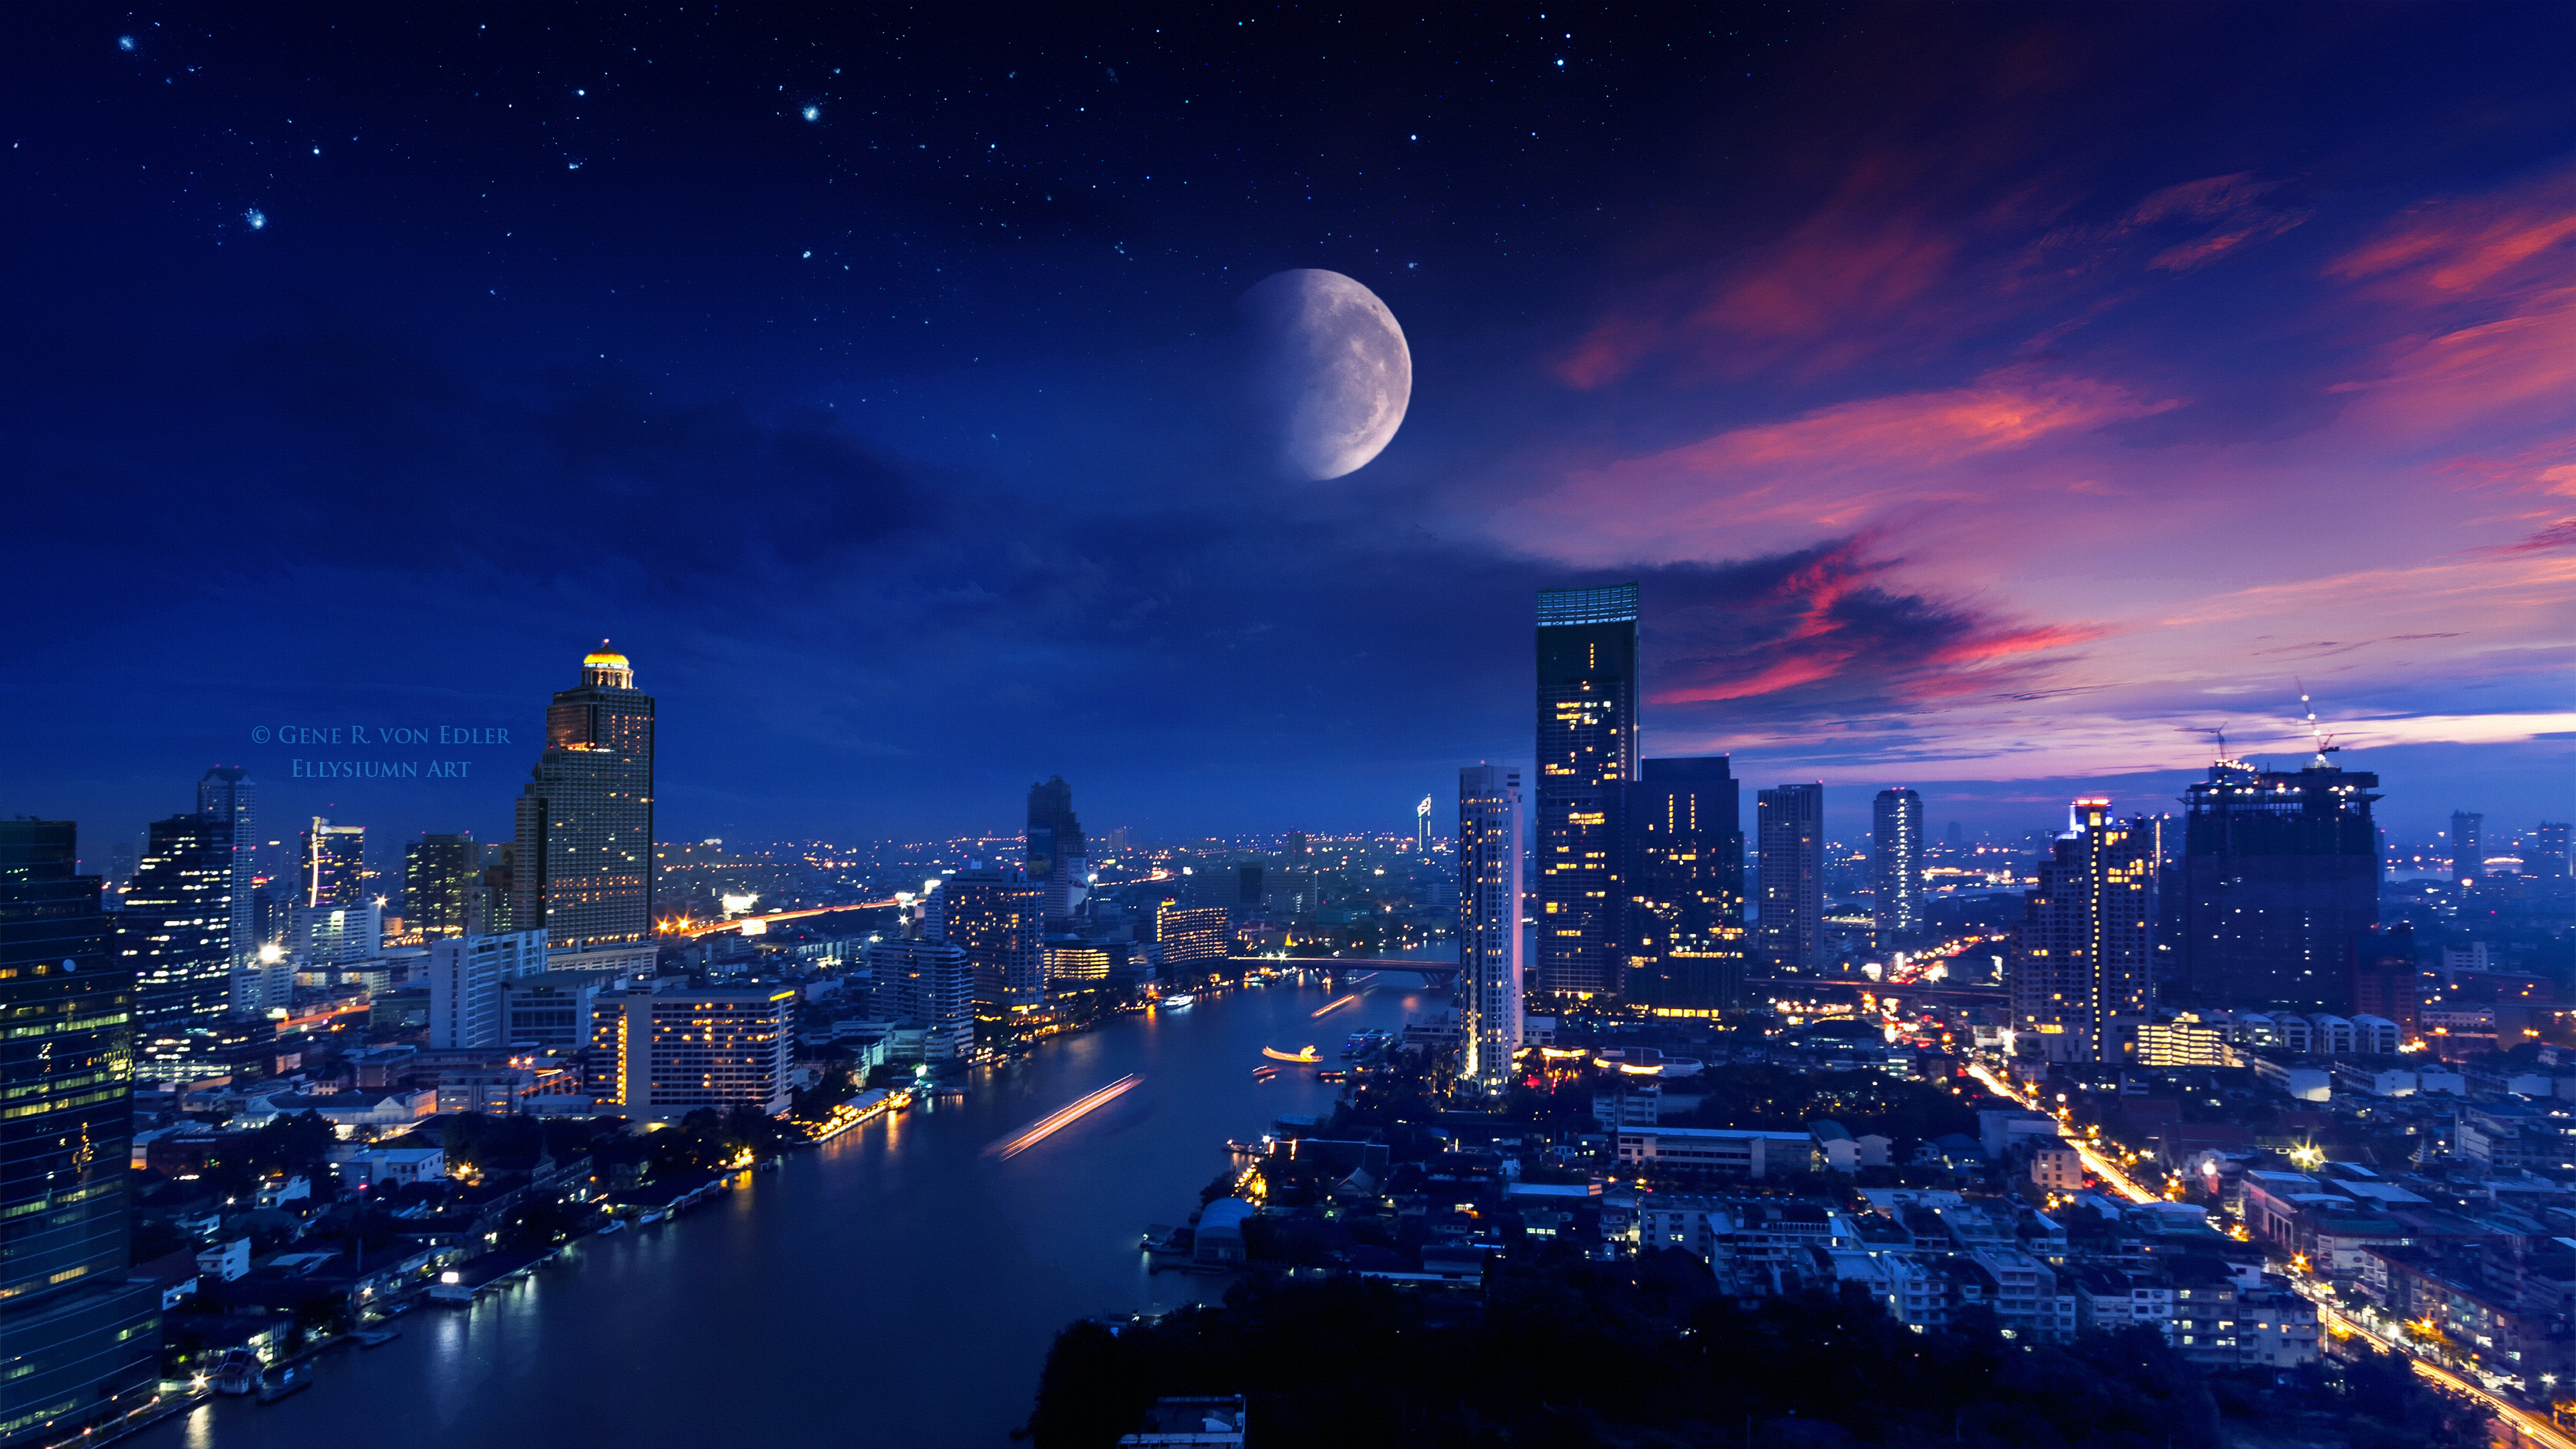 City Lights Moon Vibrant 4k, HD Photography, 4k Wallpapers ...